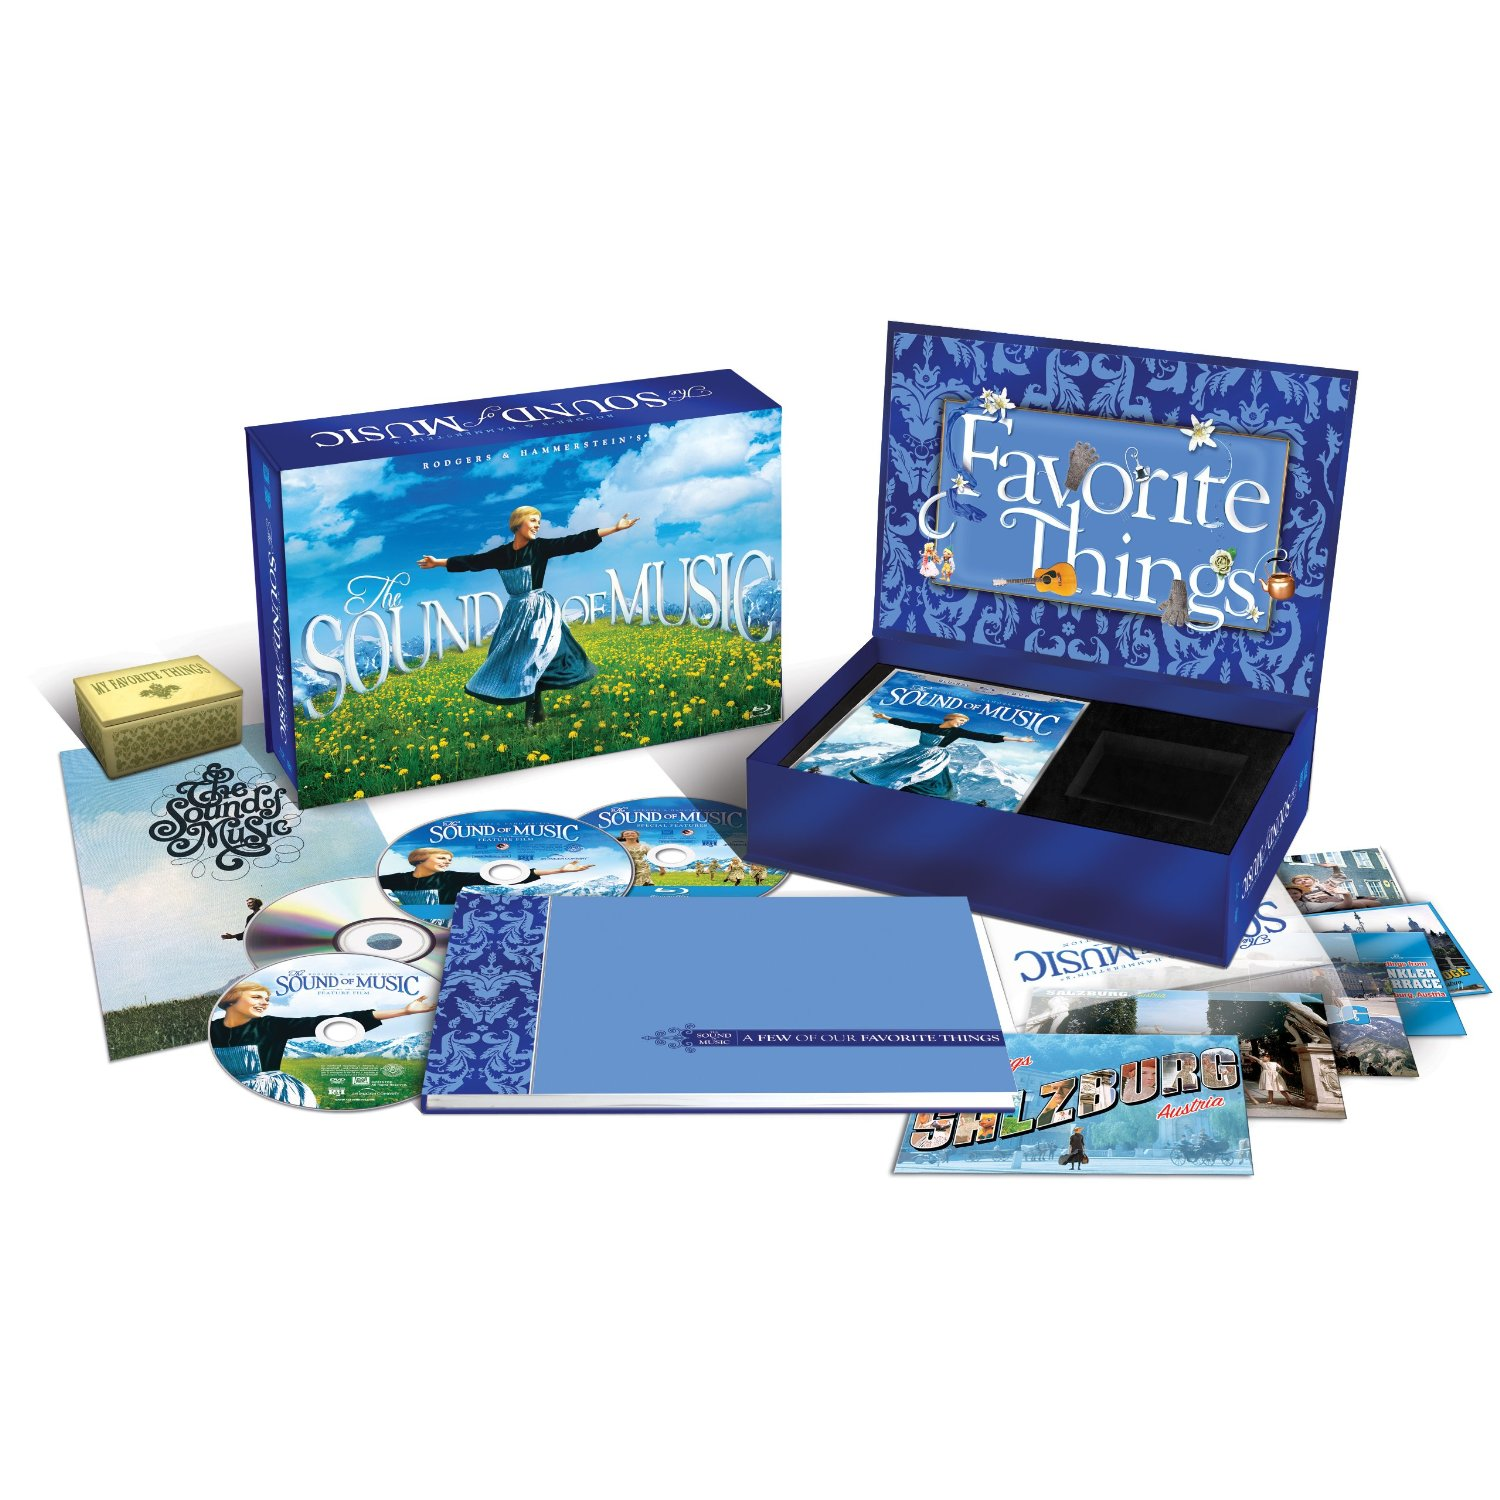 Sound Of Music Limited Edition Blu-Ray/DVD Set For $33